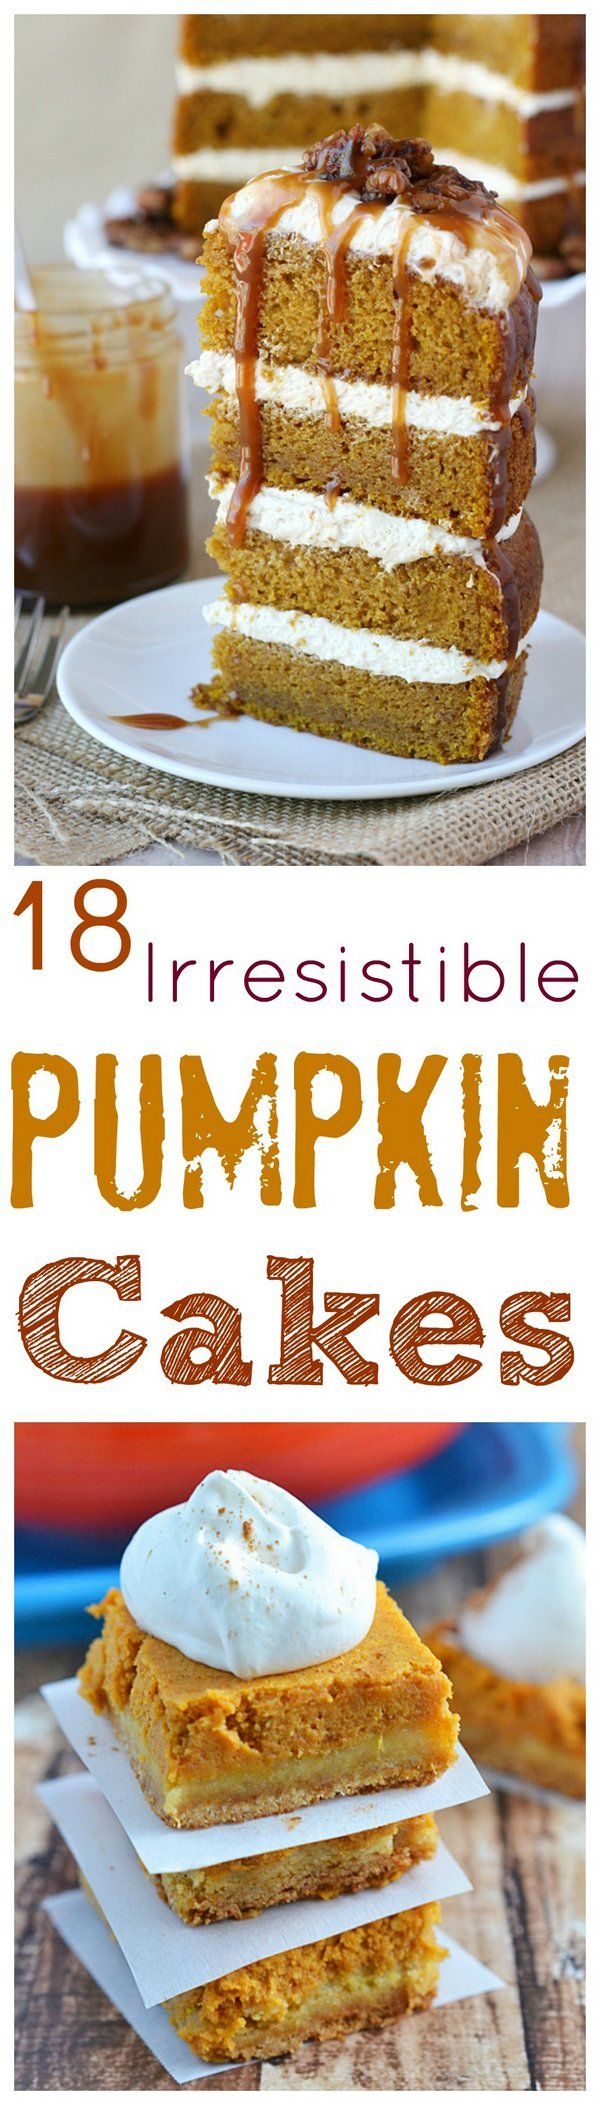 18 Irresistible Pumpkin Cakes for Fall